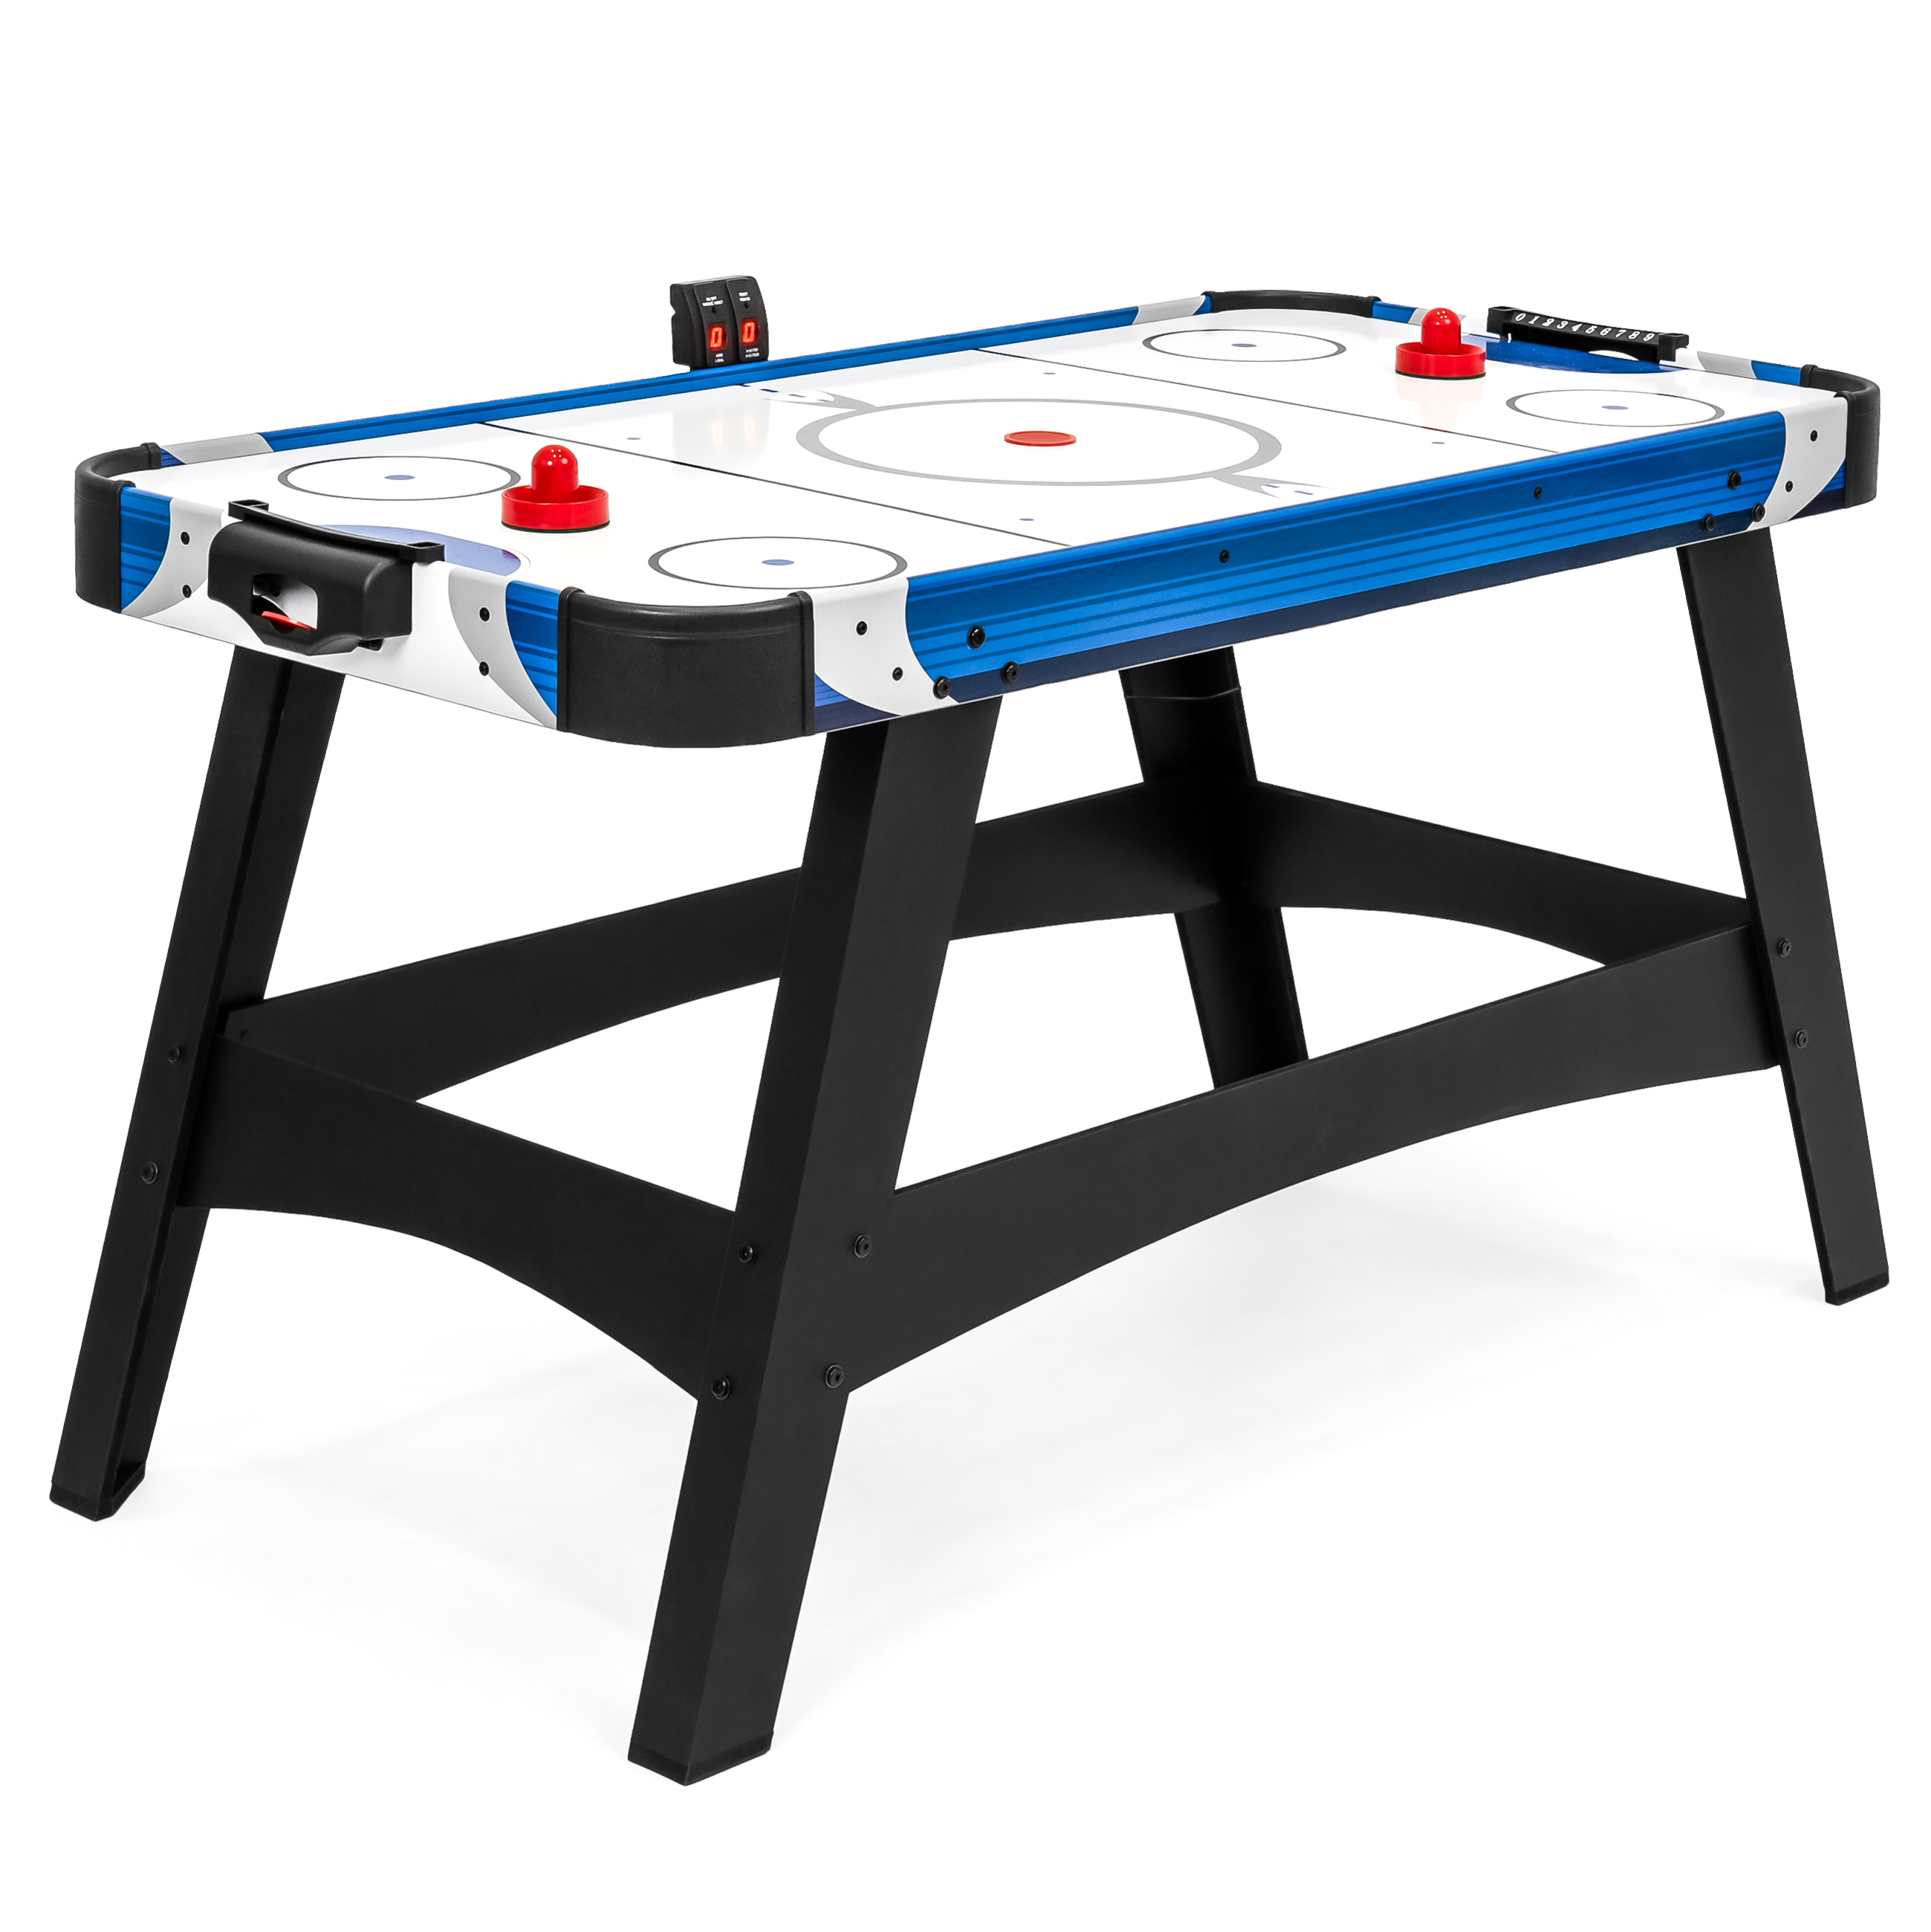 "Best Choice Products 54"" Air Powered Hockey Table with Puck, Paddles, & LED Score Board by"